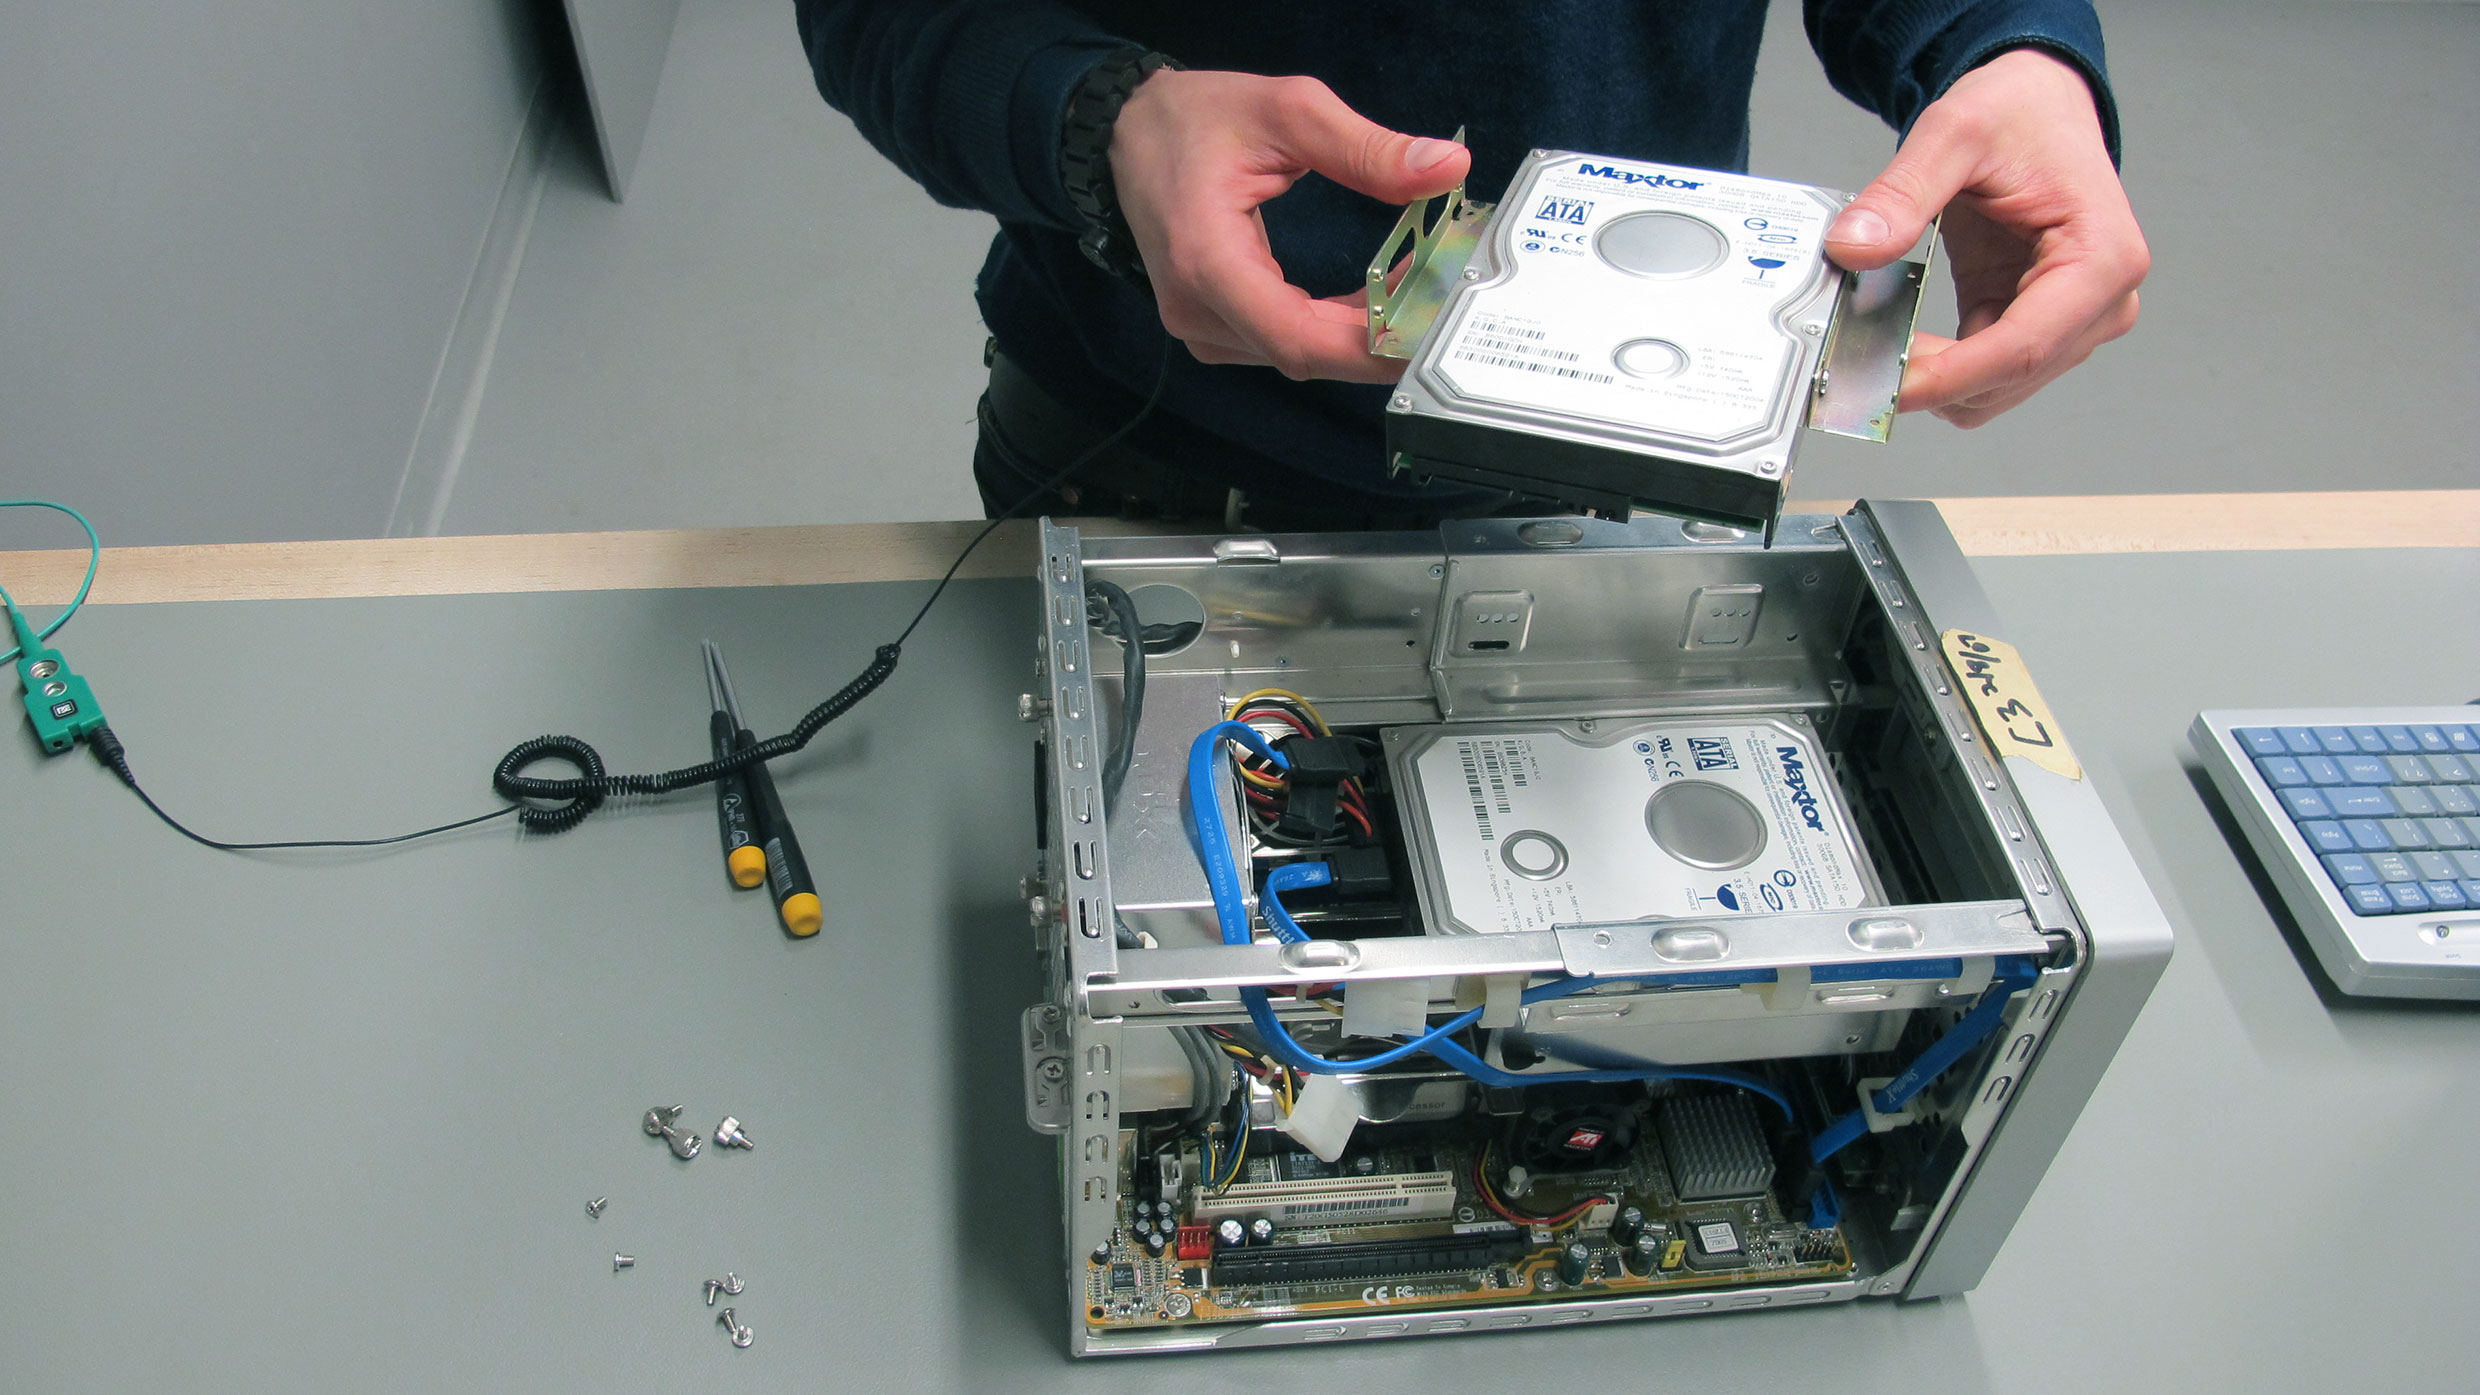 In order to create a write-blocked disk image of this vintage shuttle computer, the hard drive is removed in the Guggenheim's time-based media conservation lab. Photo: Joanna Phillips